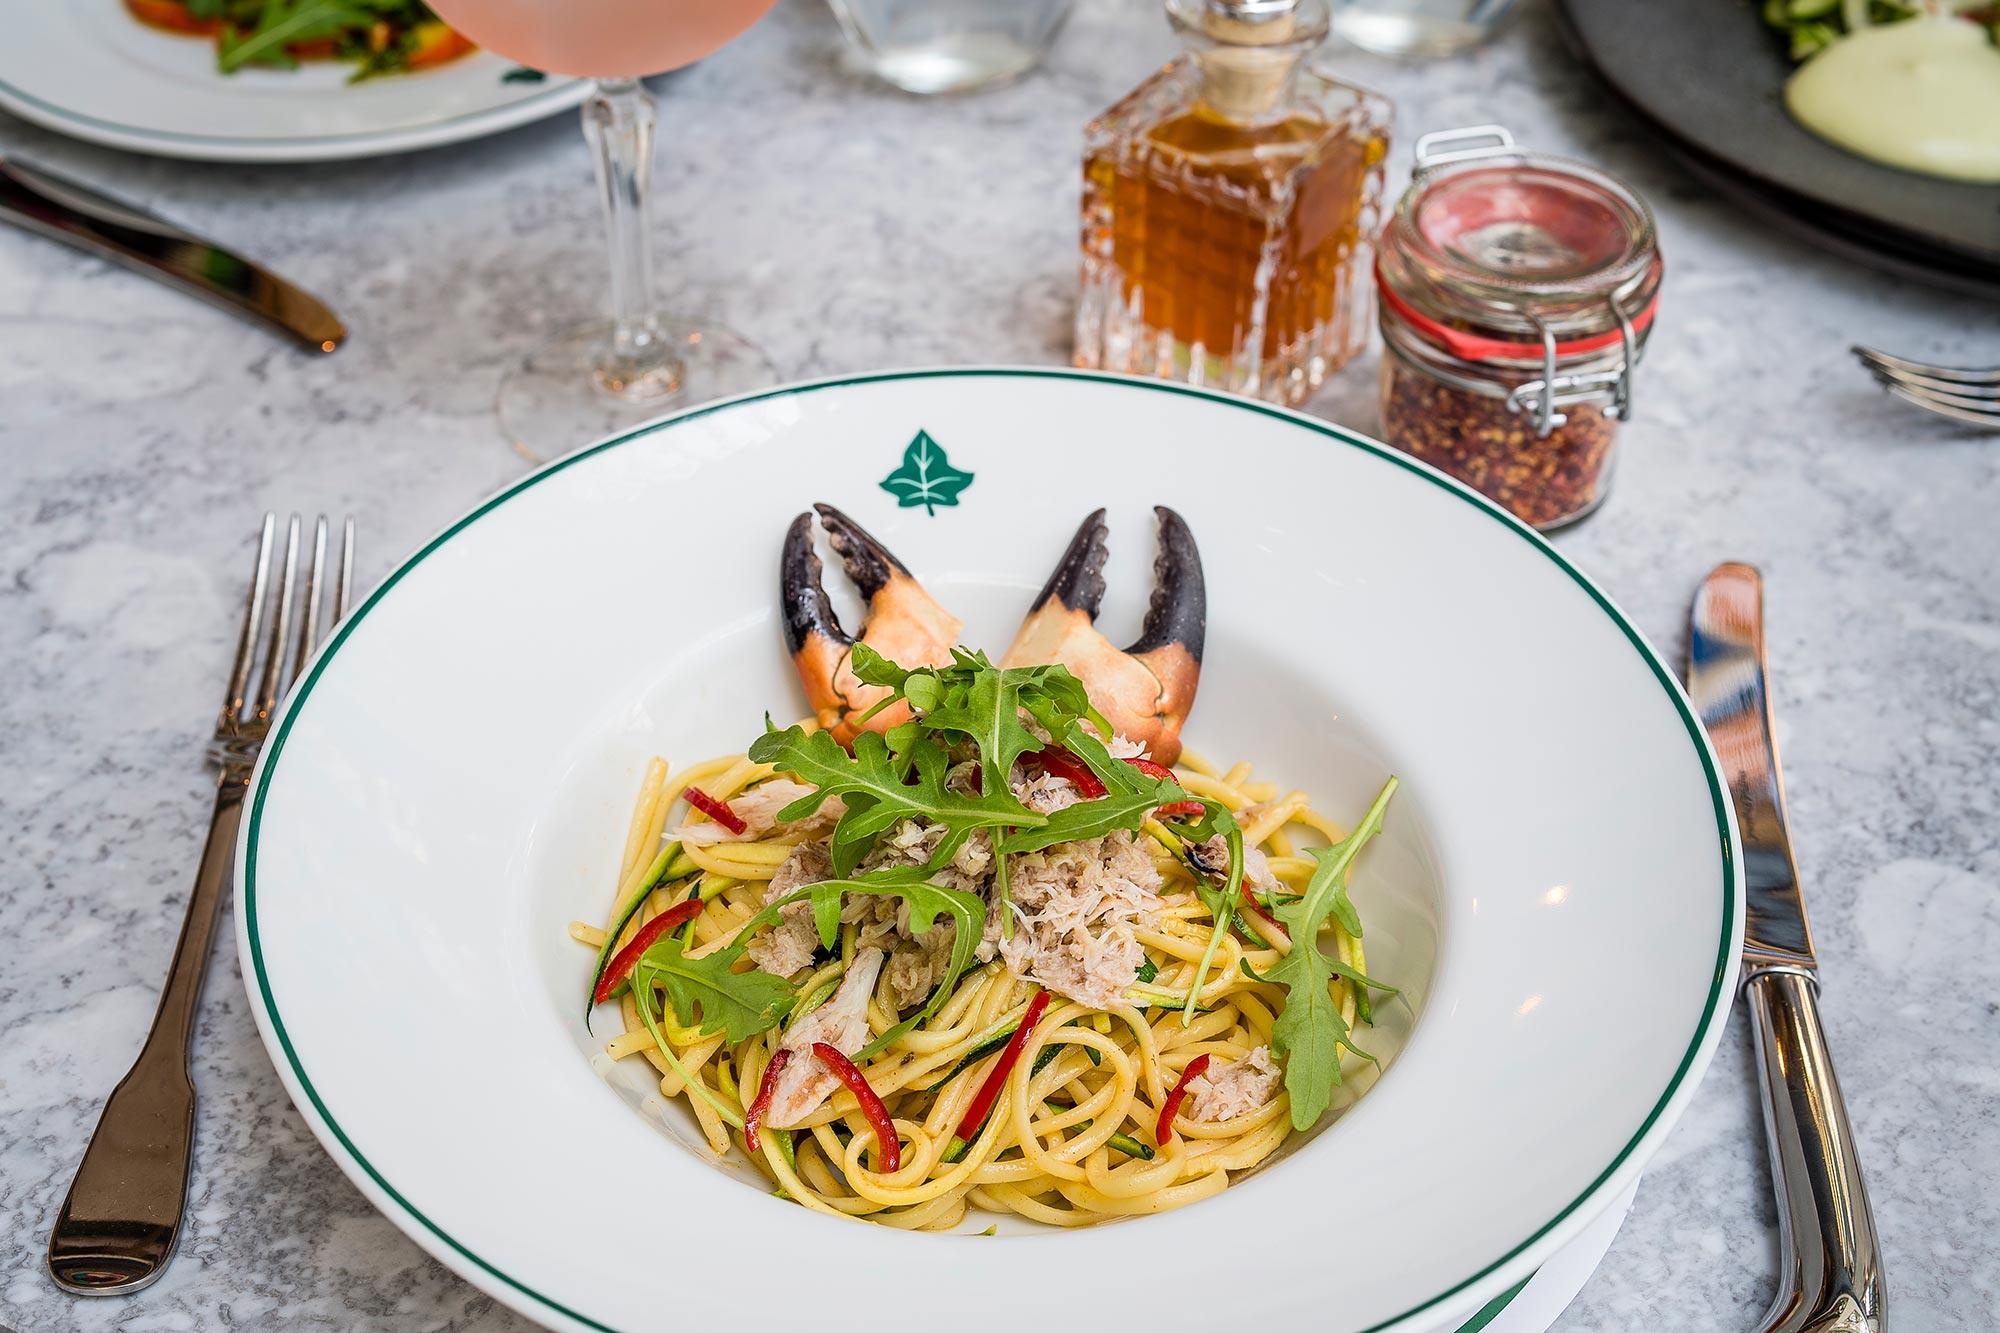 Crab Linguine - The Ivy Cafe Wimbledon - The Ivy Cafe Wimbledon